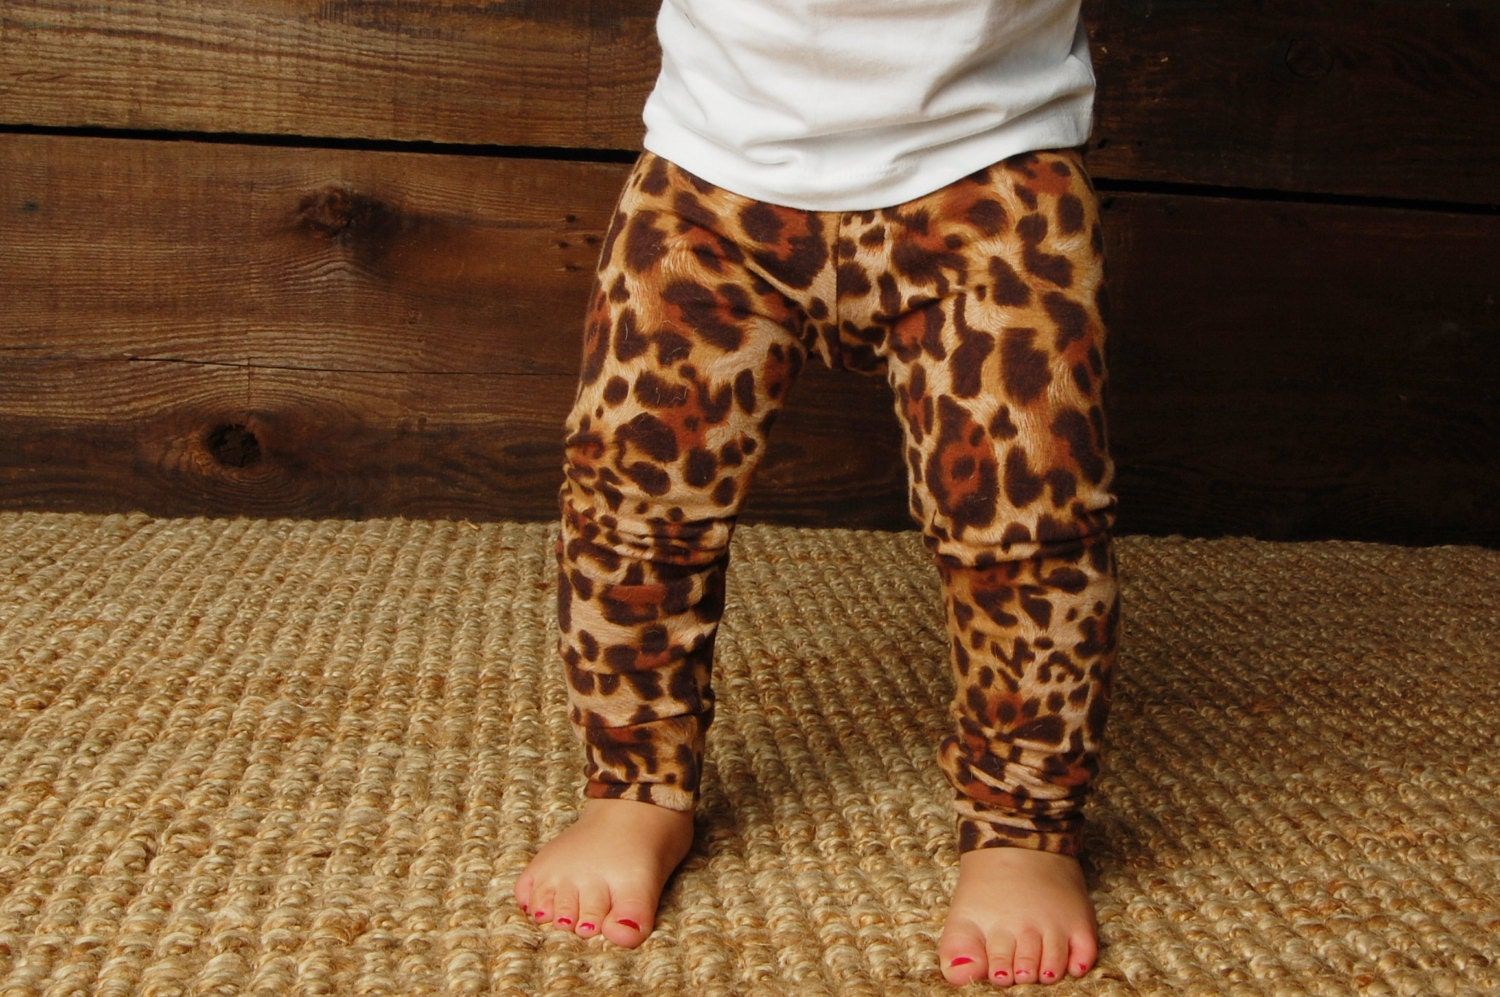 hot girls leggings toddler skirt leggings eco leggings baby leggings pants leopard baby ruffle bloomers leopard bloomers leopard cotton baby bloomers leopard print baby pants leopard bloomer with ruffle leopard satin ruffle bloomer leopard baby pants leopard satin ruffle diaper cover bloomers leopard ruffle pants for babies sexy white leopard.